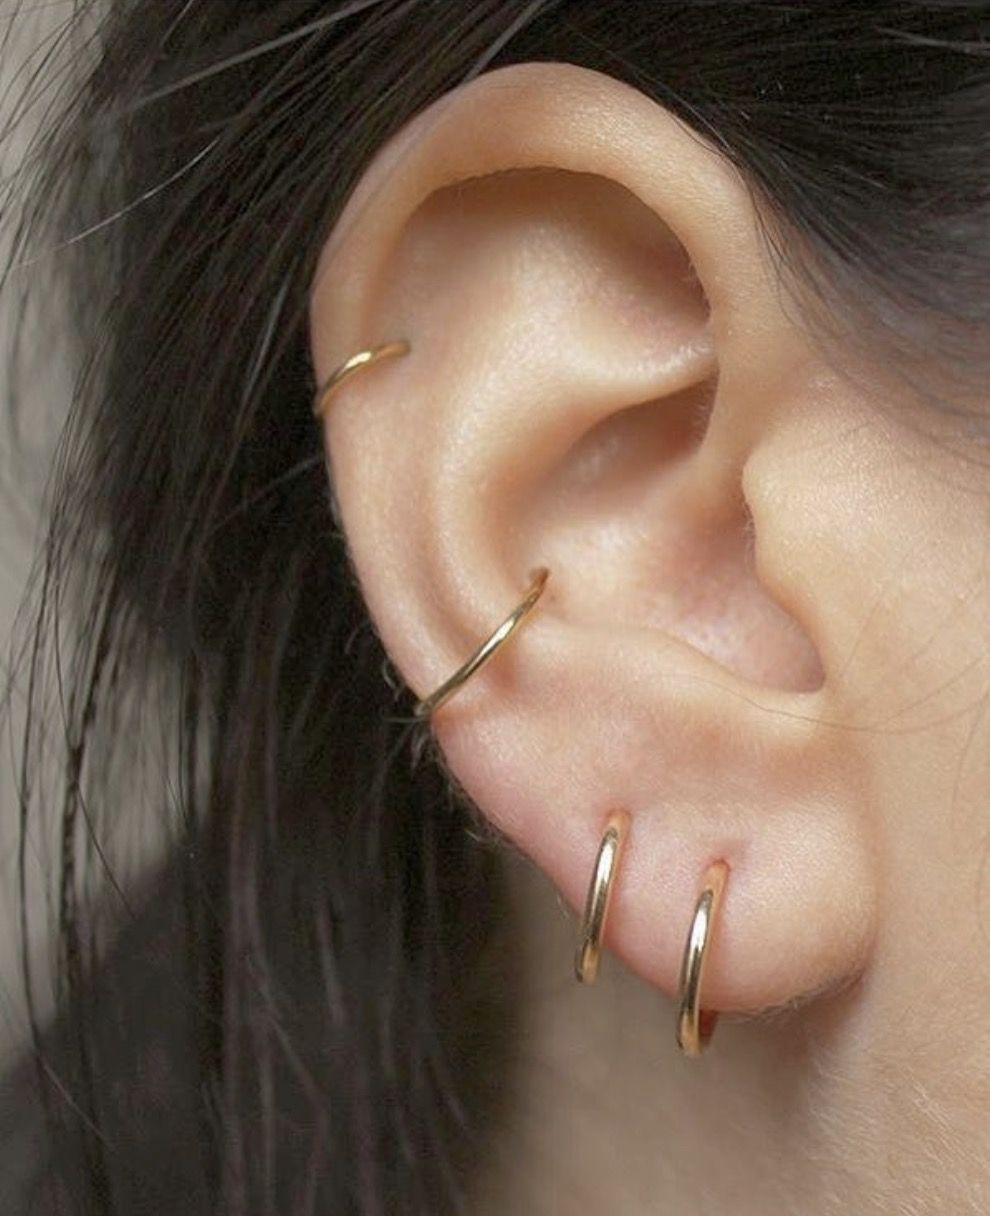 Nose piercing through the middle  Pin by Savannah Pruett on E Y E C A N D Y  Pinterest  Piercings